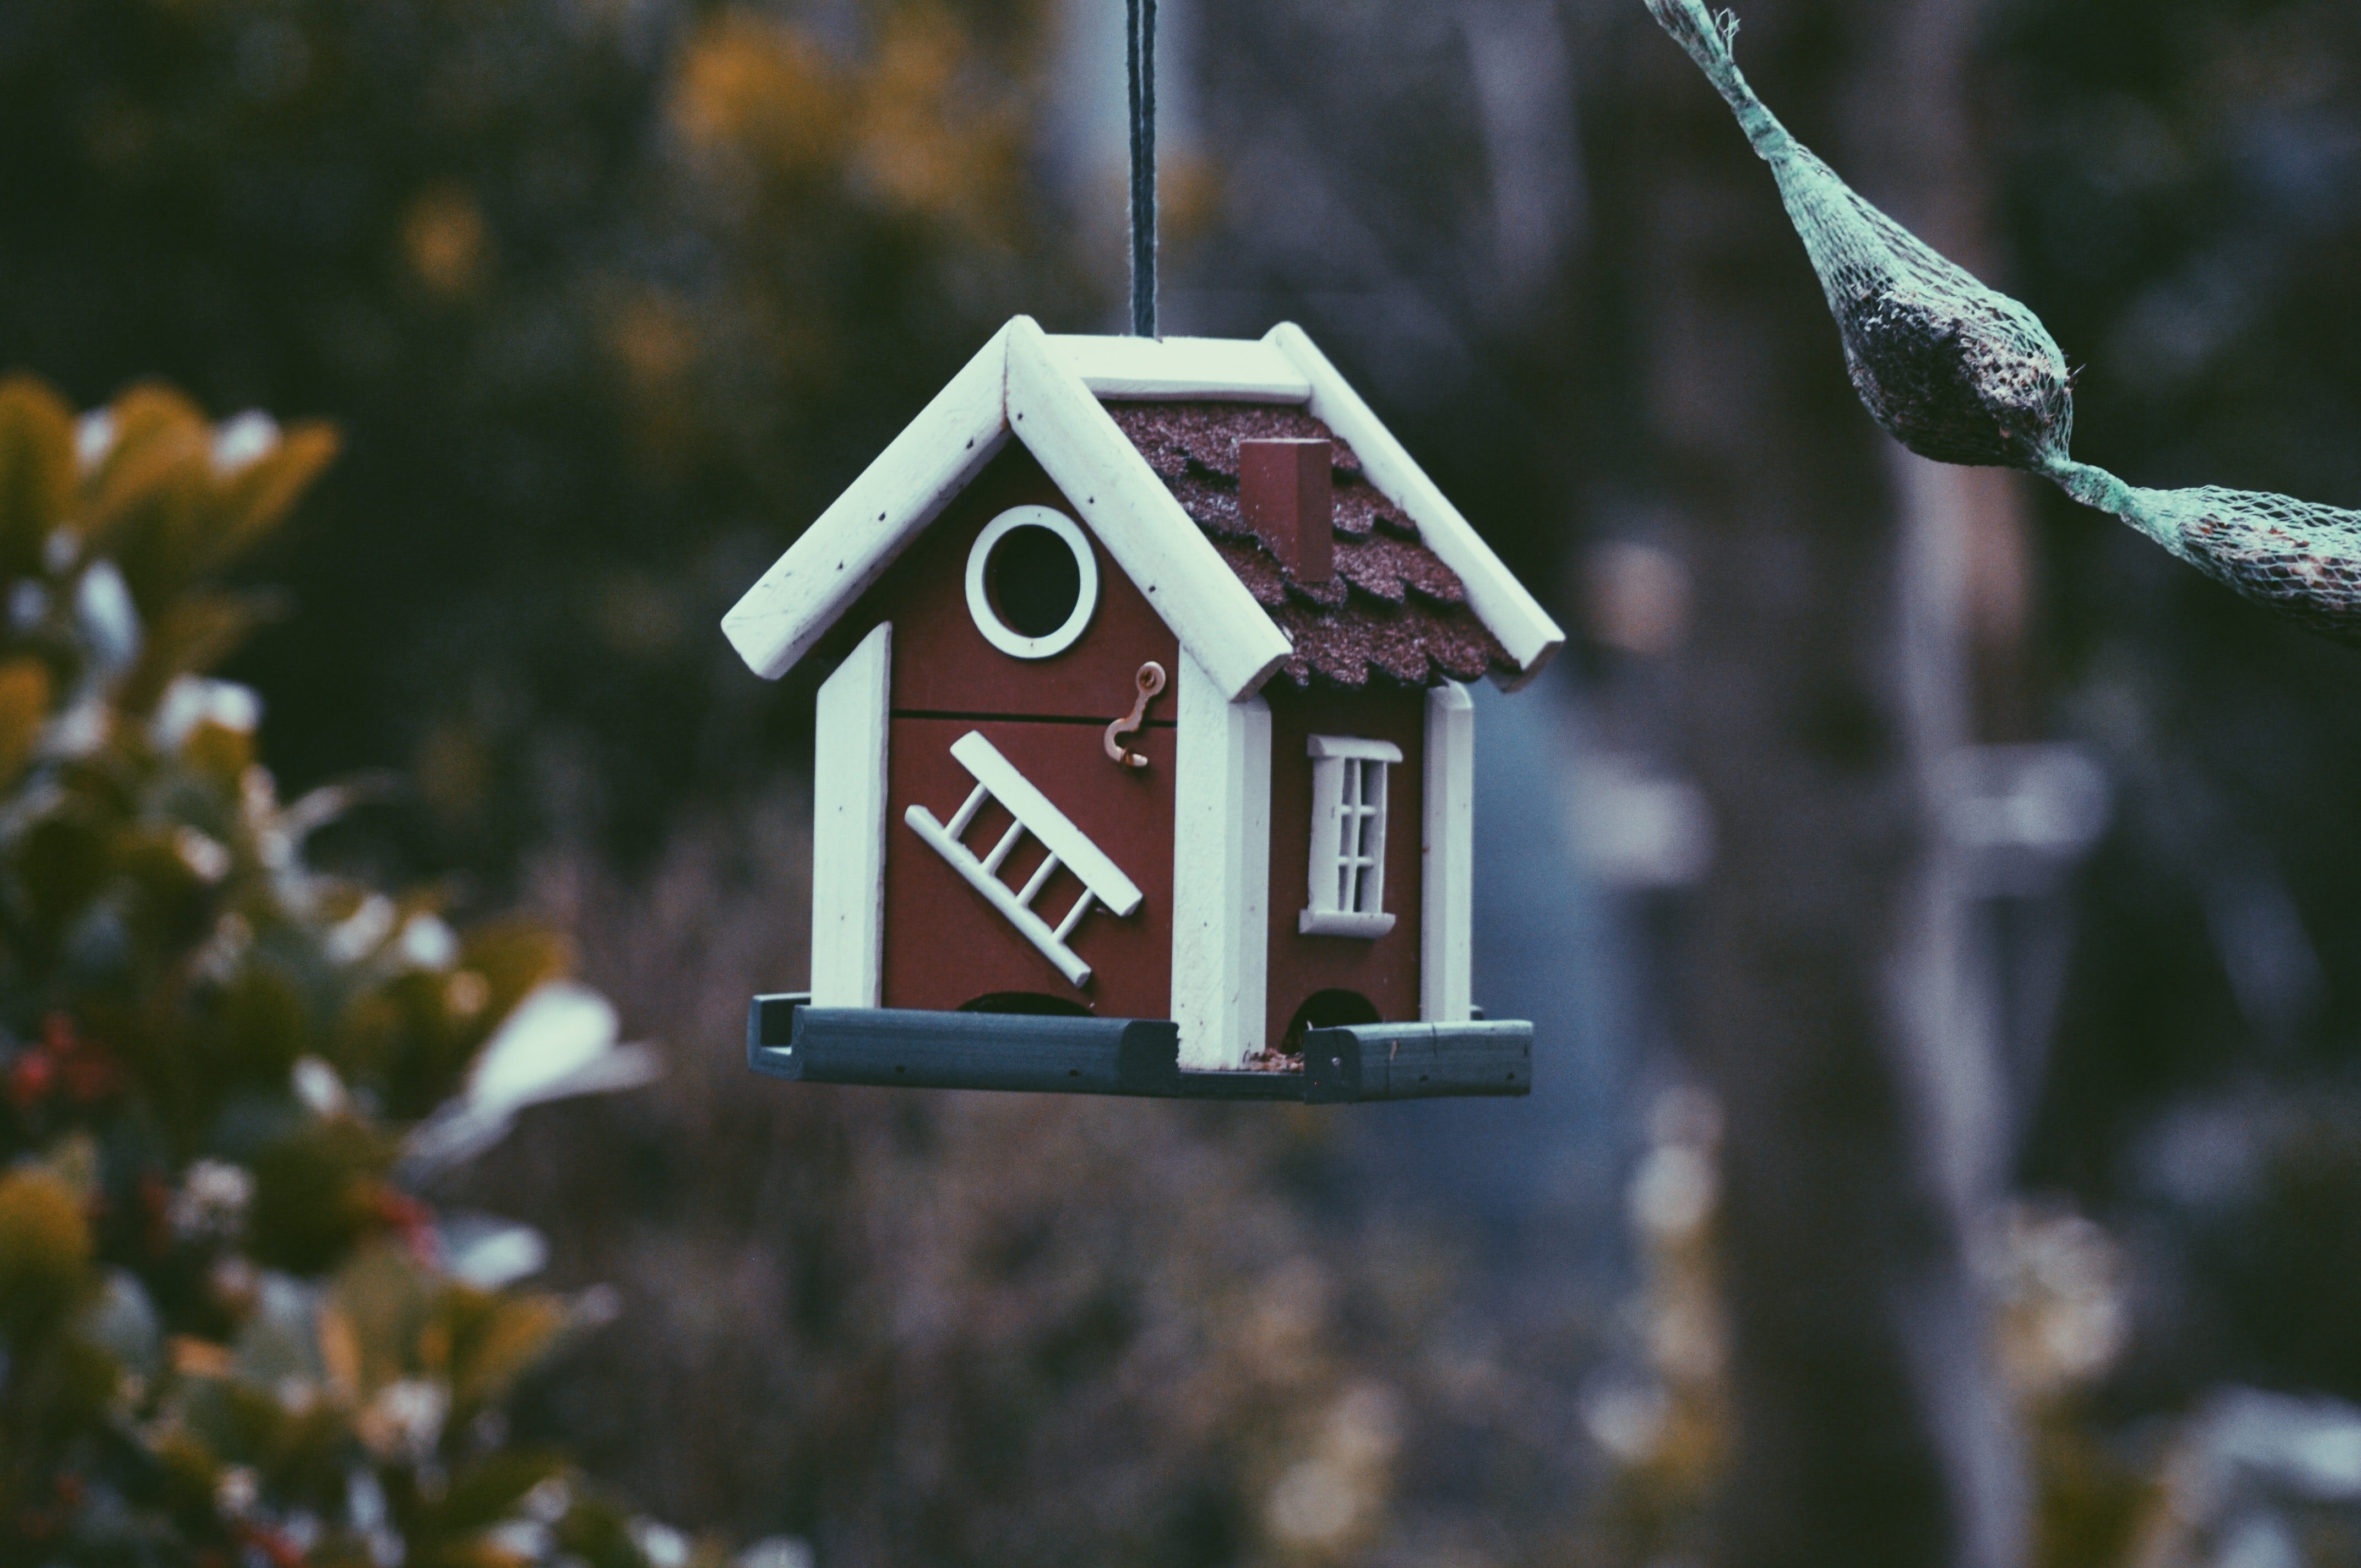 Brown and white birdhouse hanging from tree